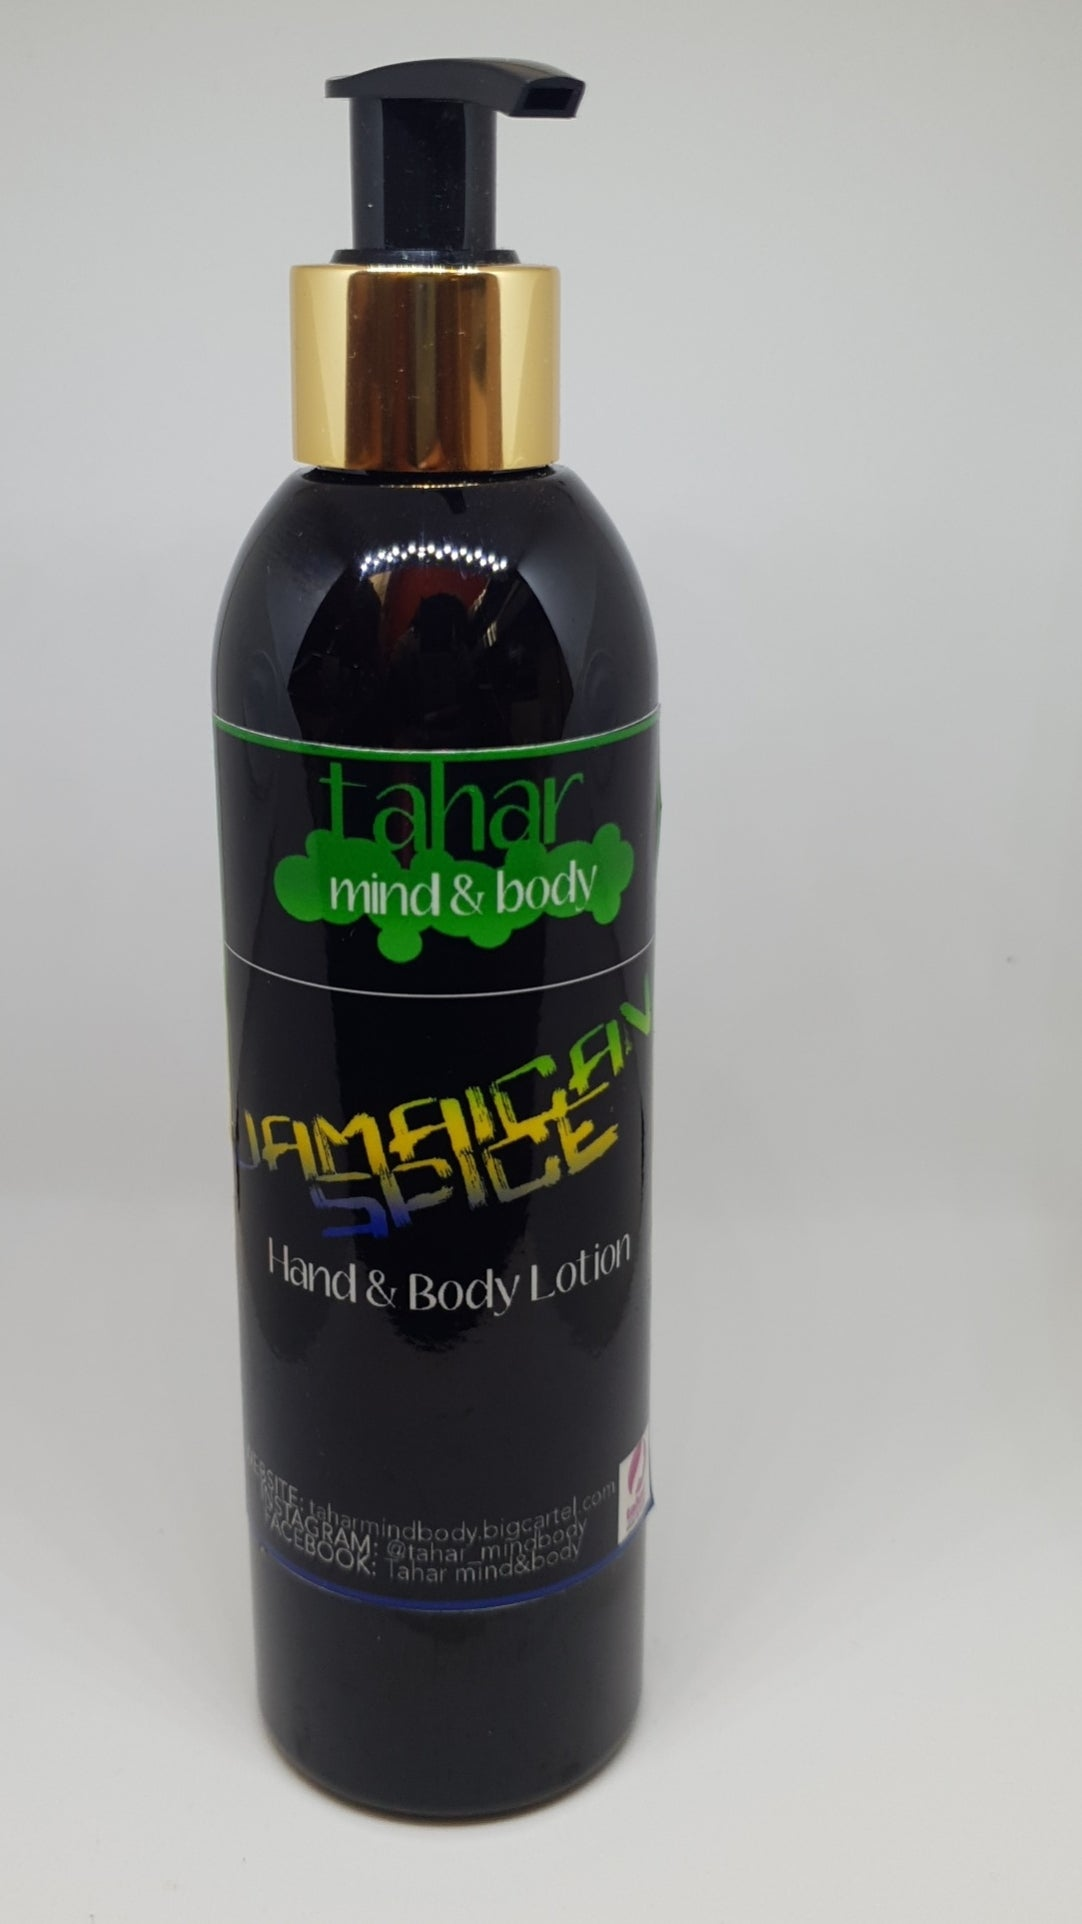 Image of 'Jamaican Spice' hand & body lotion